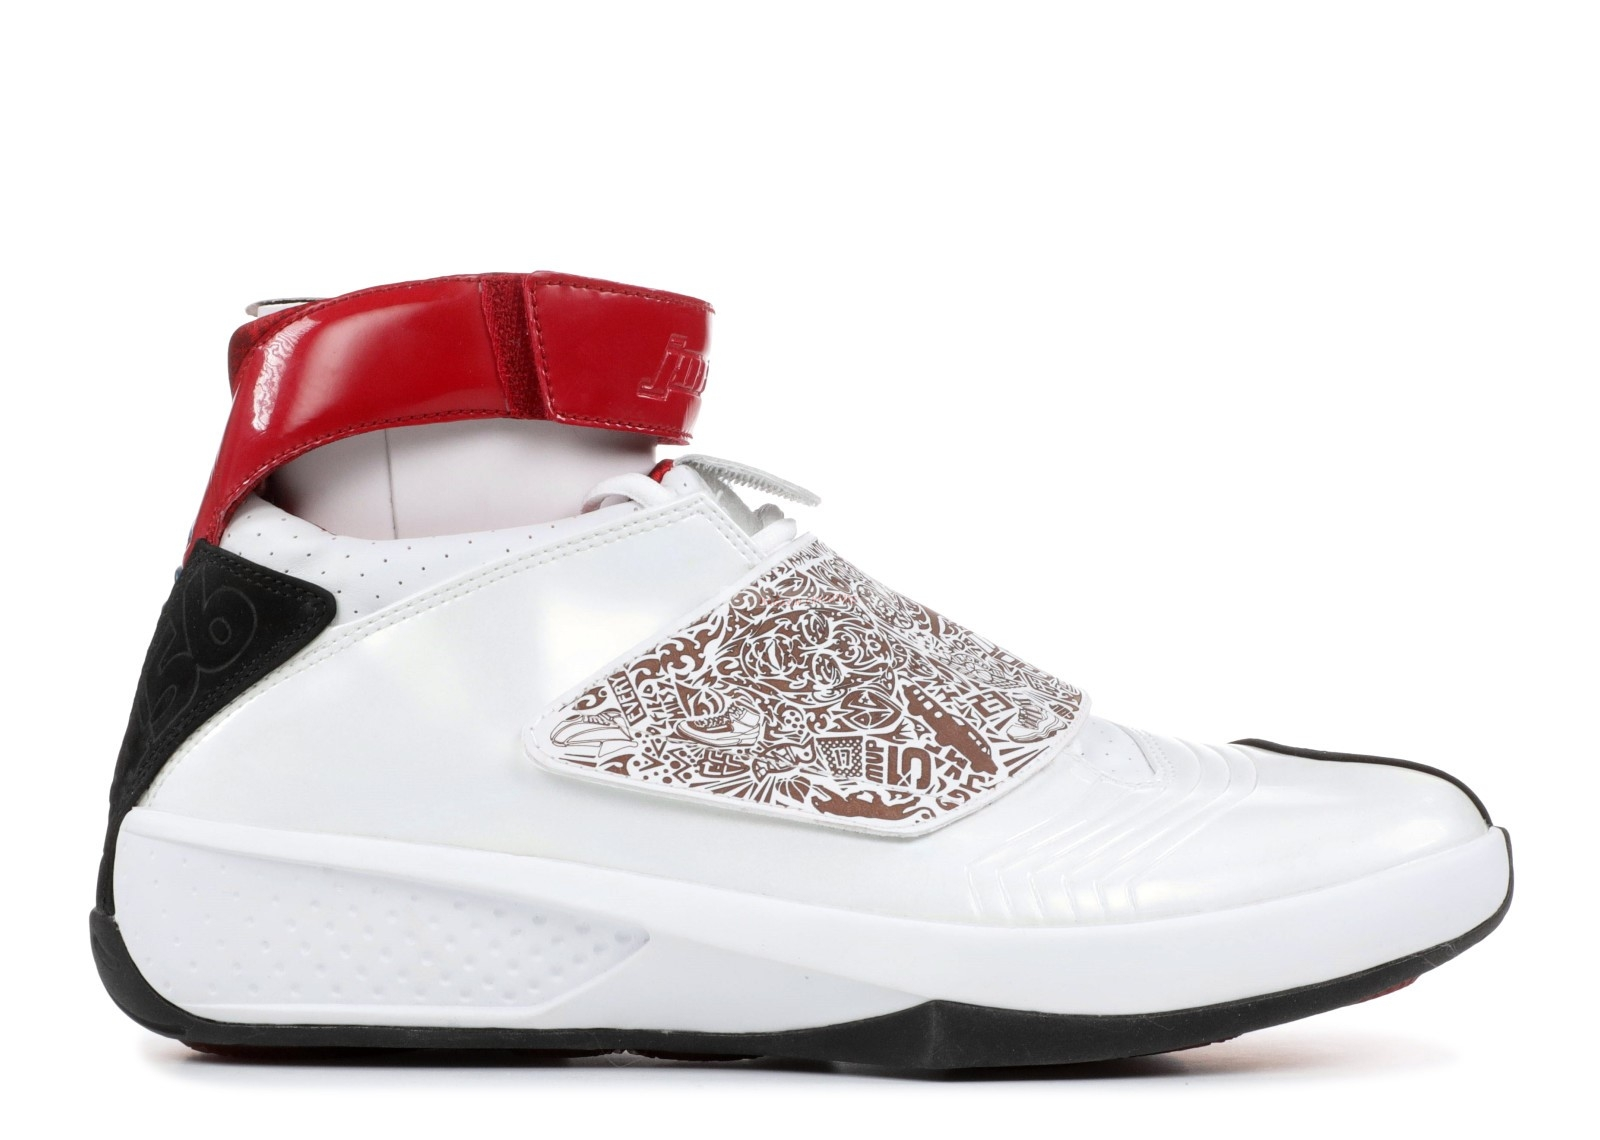 Air Jordan 20 Blanc Rouge (310455-161) Chaussure de Basket